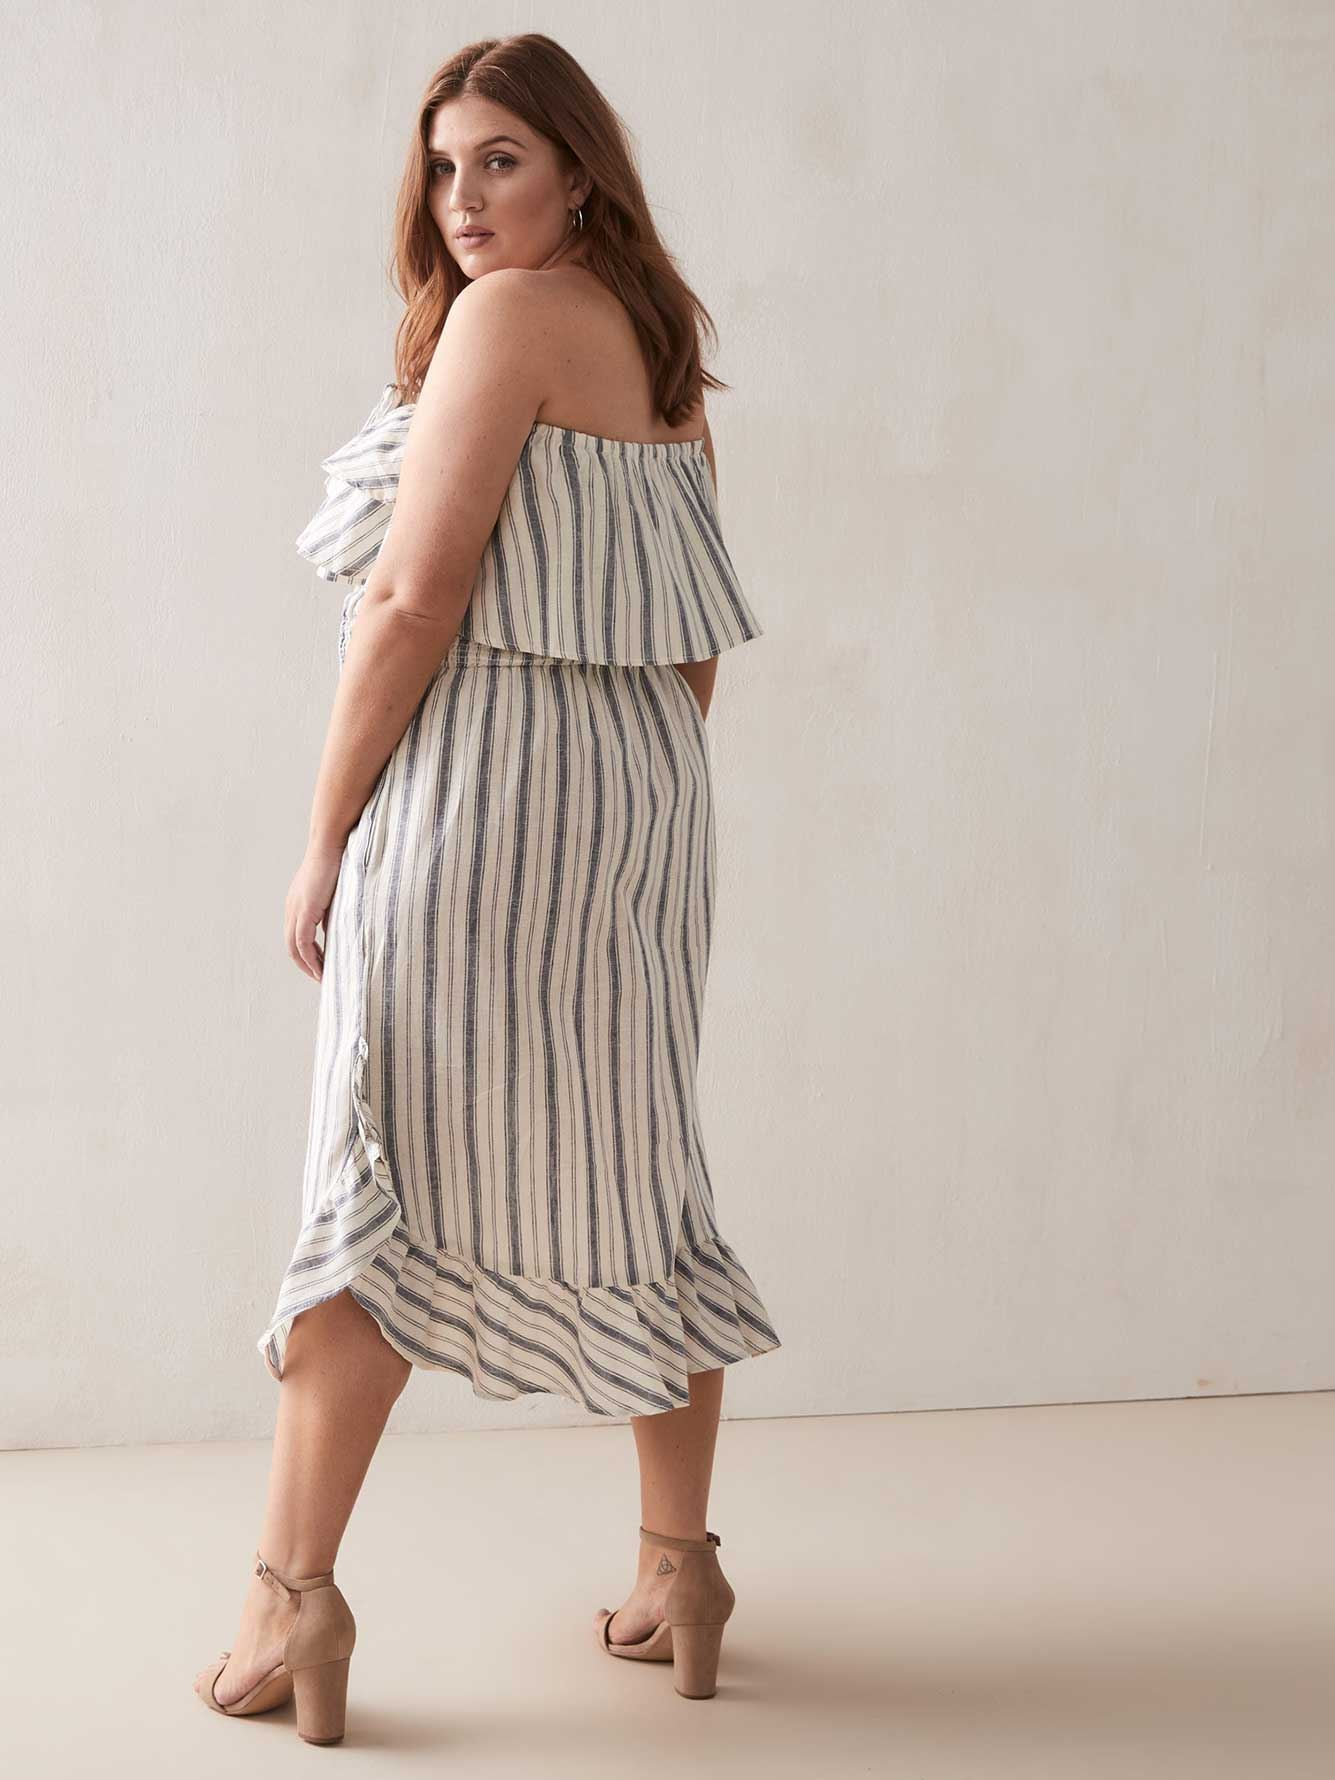 Off-the-Shoulder Jancinita Linen Dress - RACHEL Rachel Roy